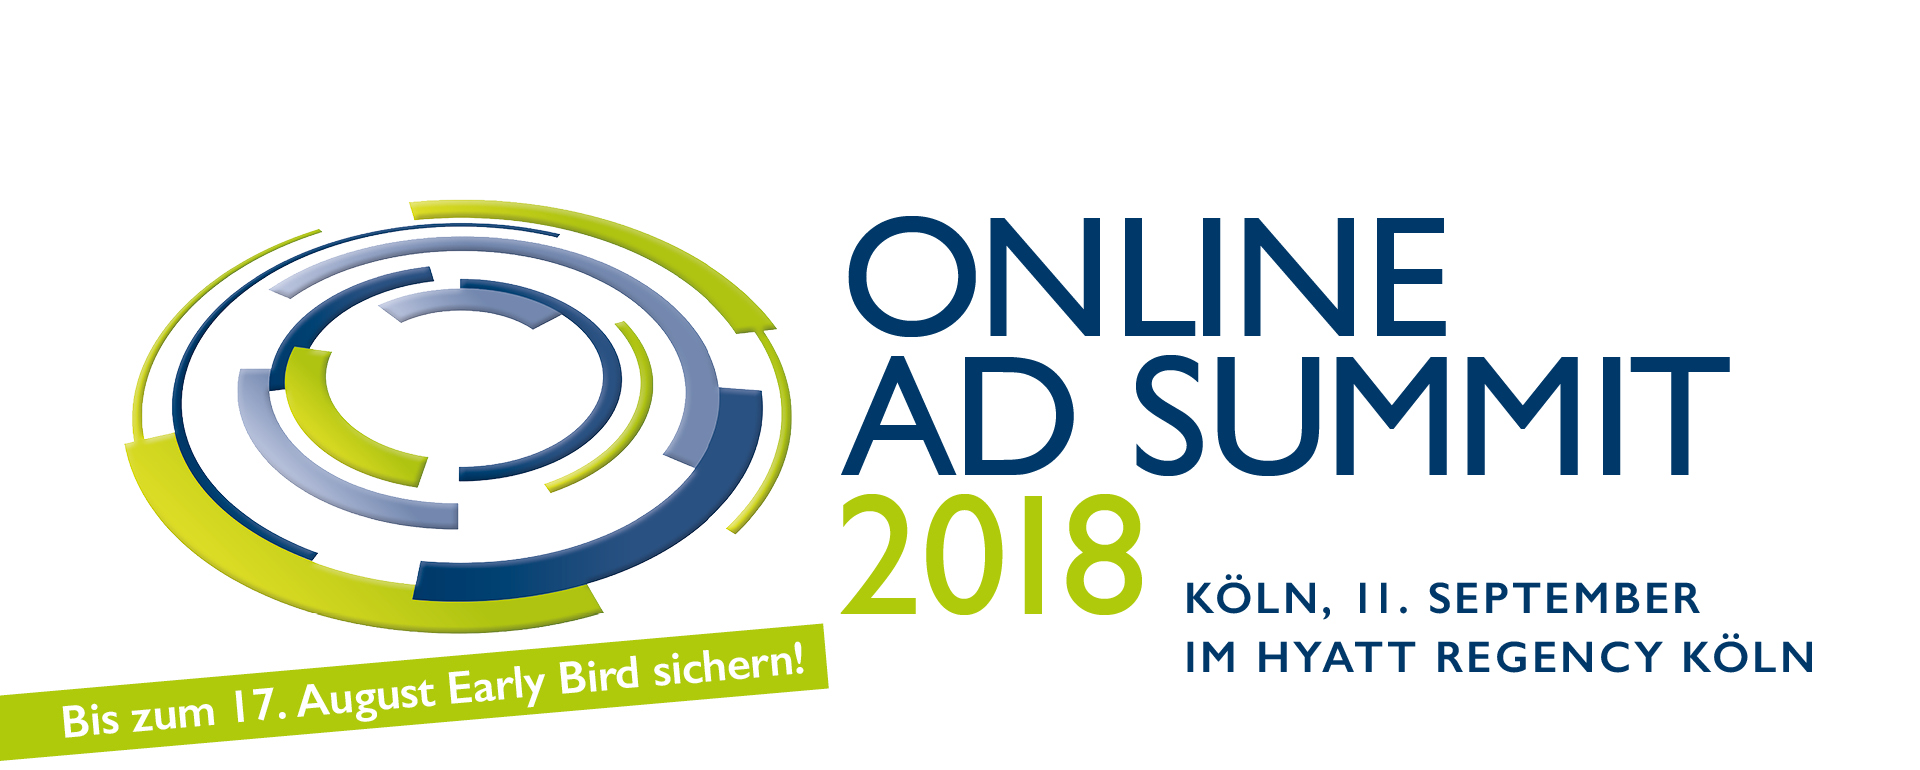 Online Ad Summit: Jetzt Early Bird Rate sichern!